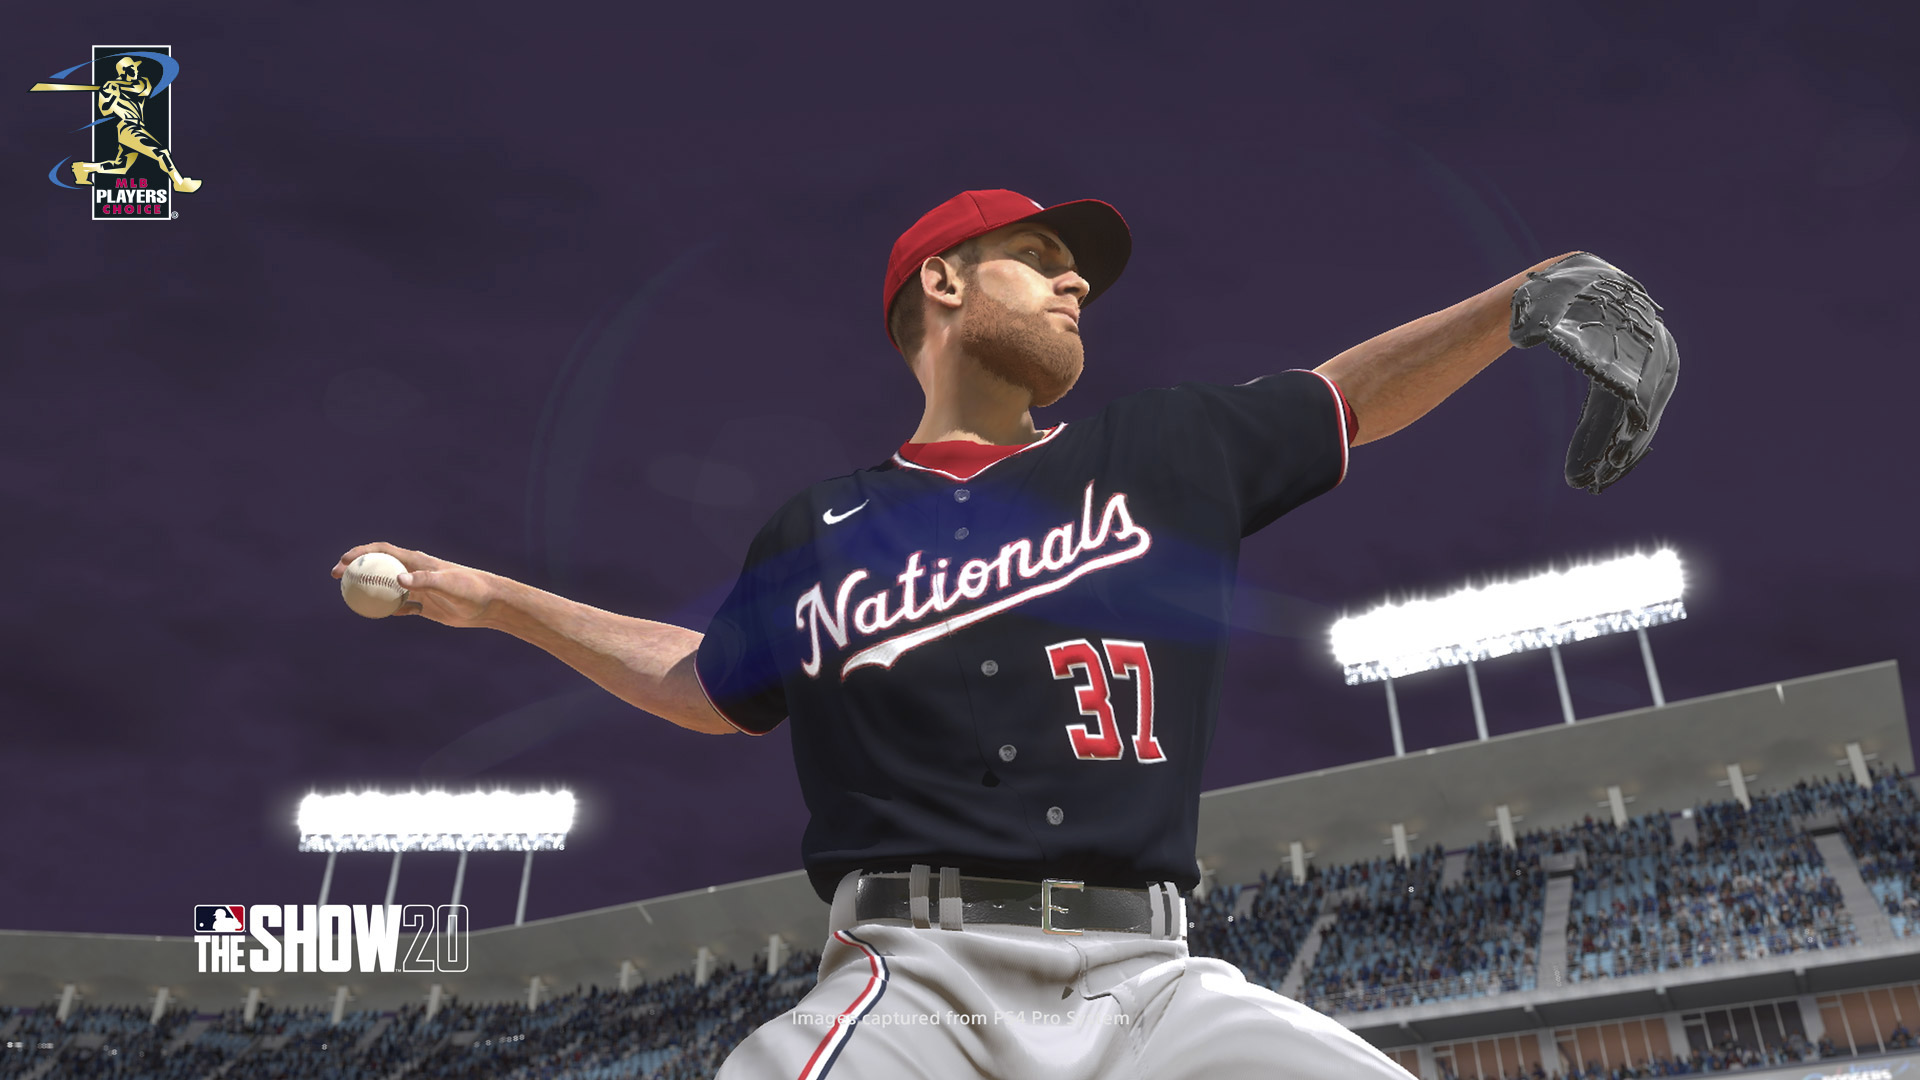 Captura de pantalla 4 de MLB The Show 20